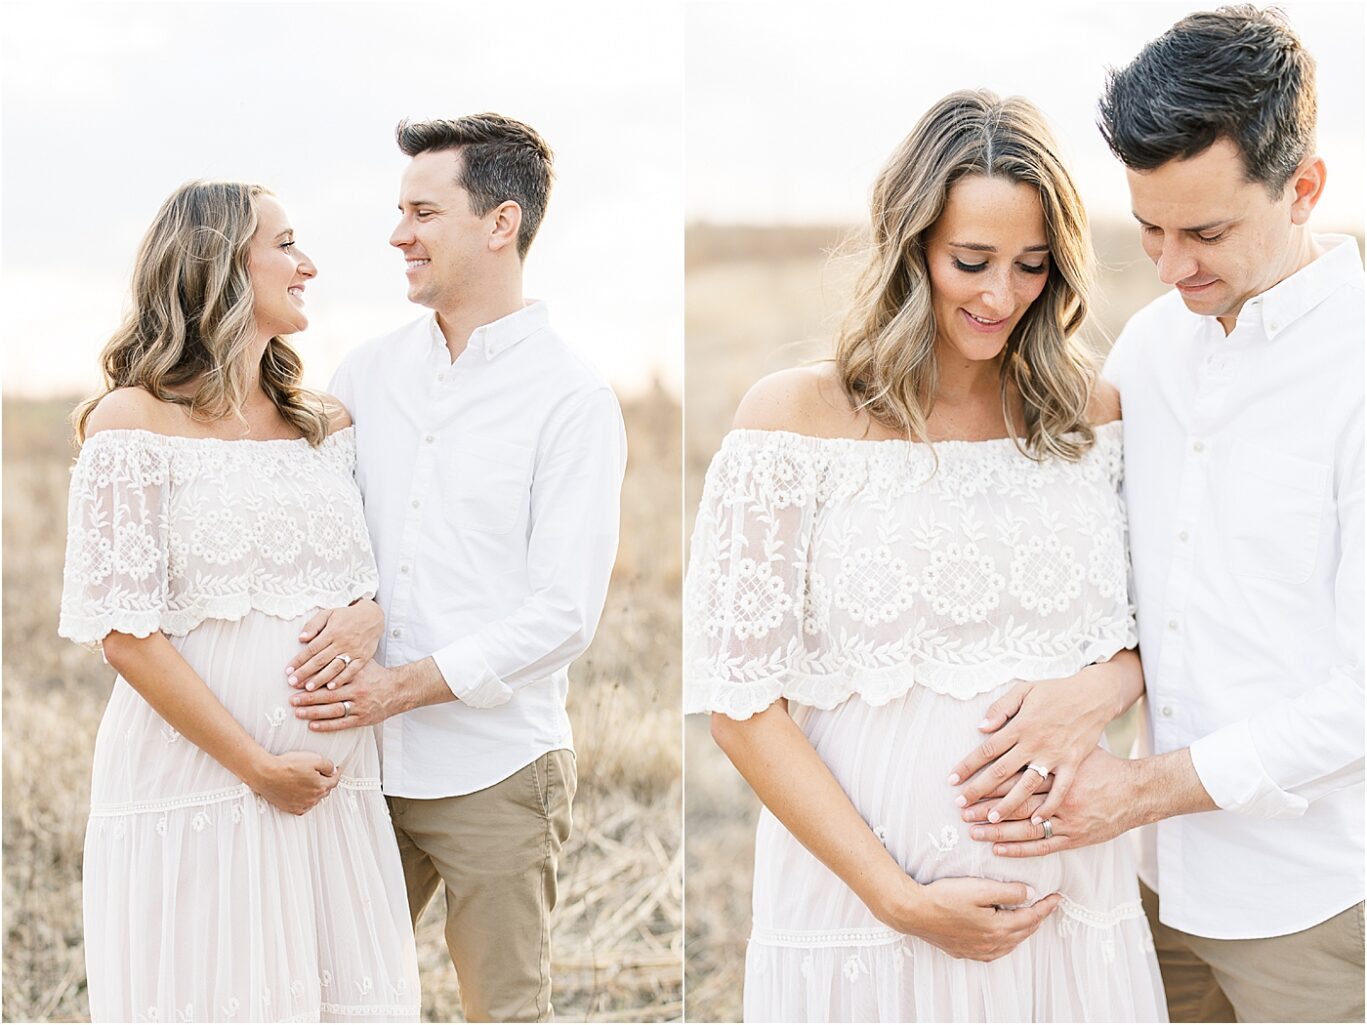 Mom and Dad to be standing together for maternity photos. Photos by Broad Ripple IN Maternity Photographer, Lindsay Konopa Photography.